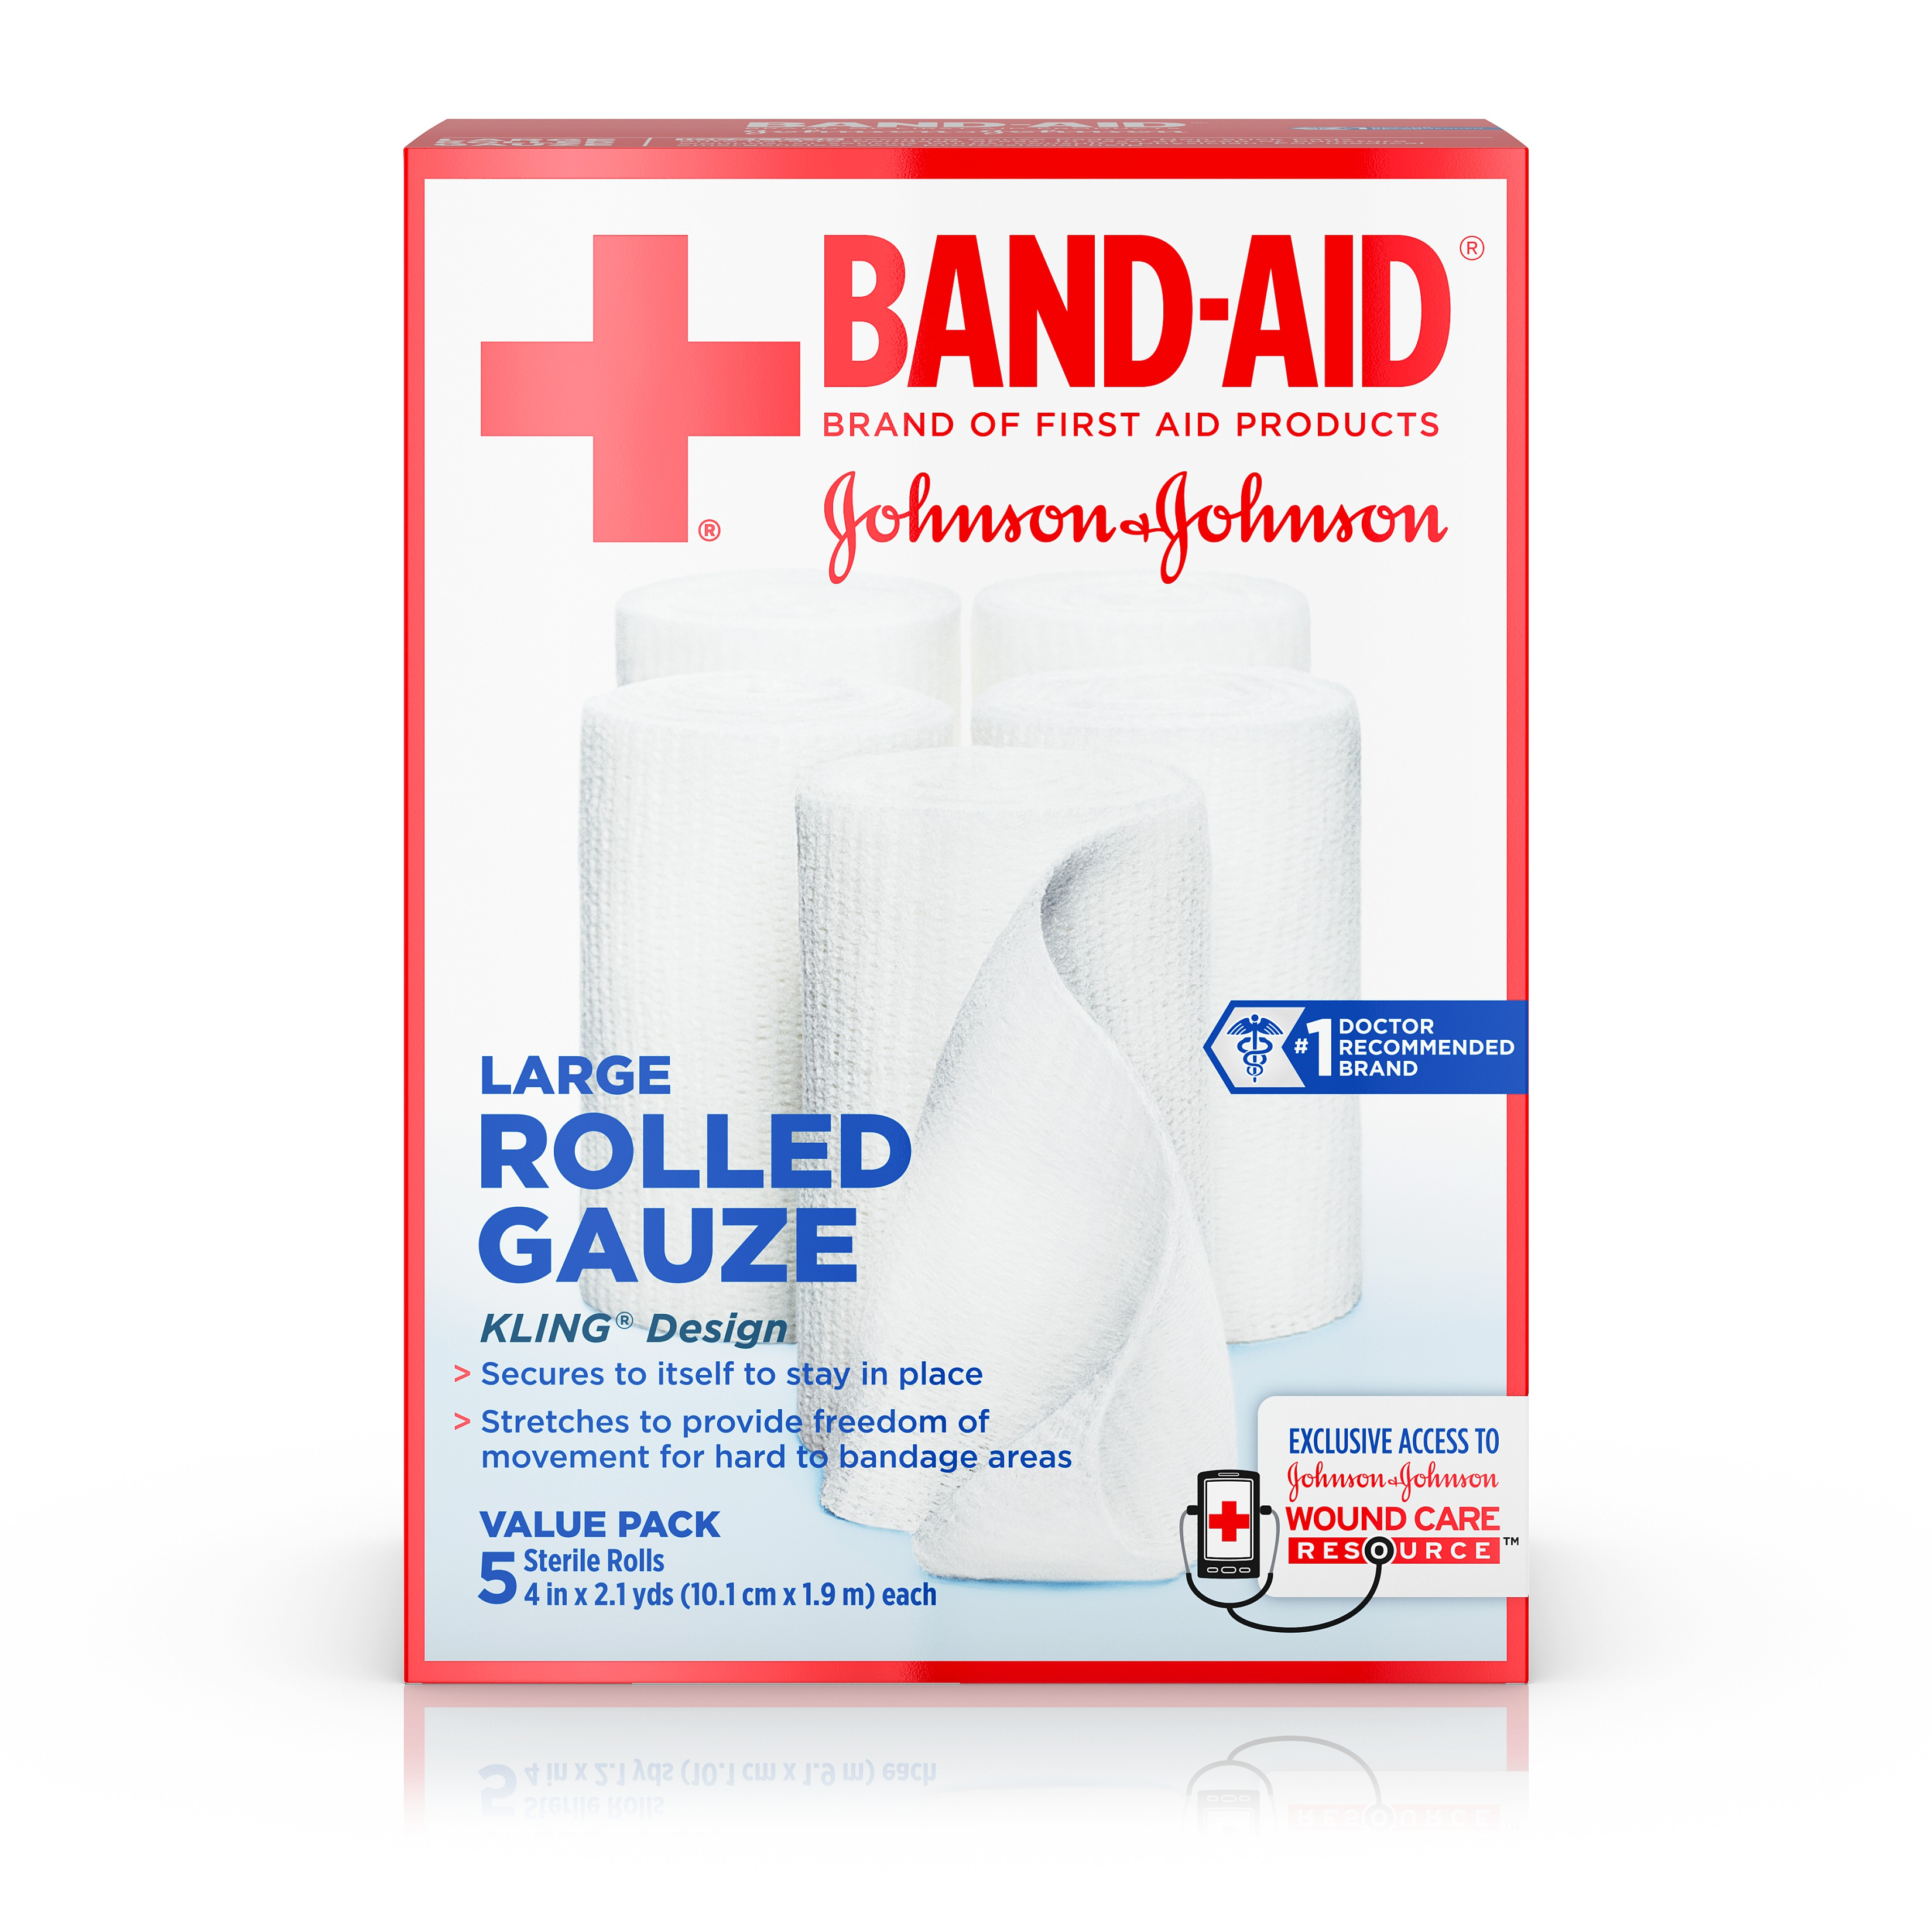 Band-Aid Brand of First Aid Products Rolled Gauze, Minor Wound Care, 4 Inches by 2.1 Yards, 5 Count Value Pack